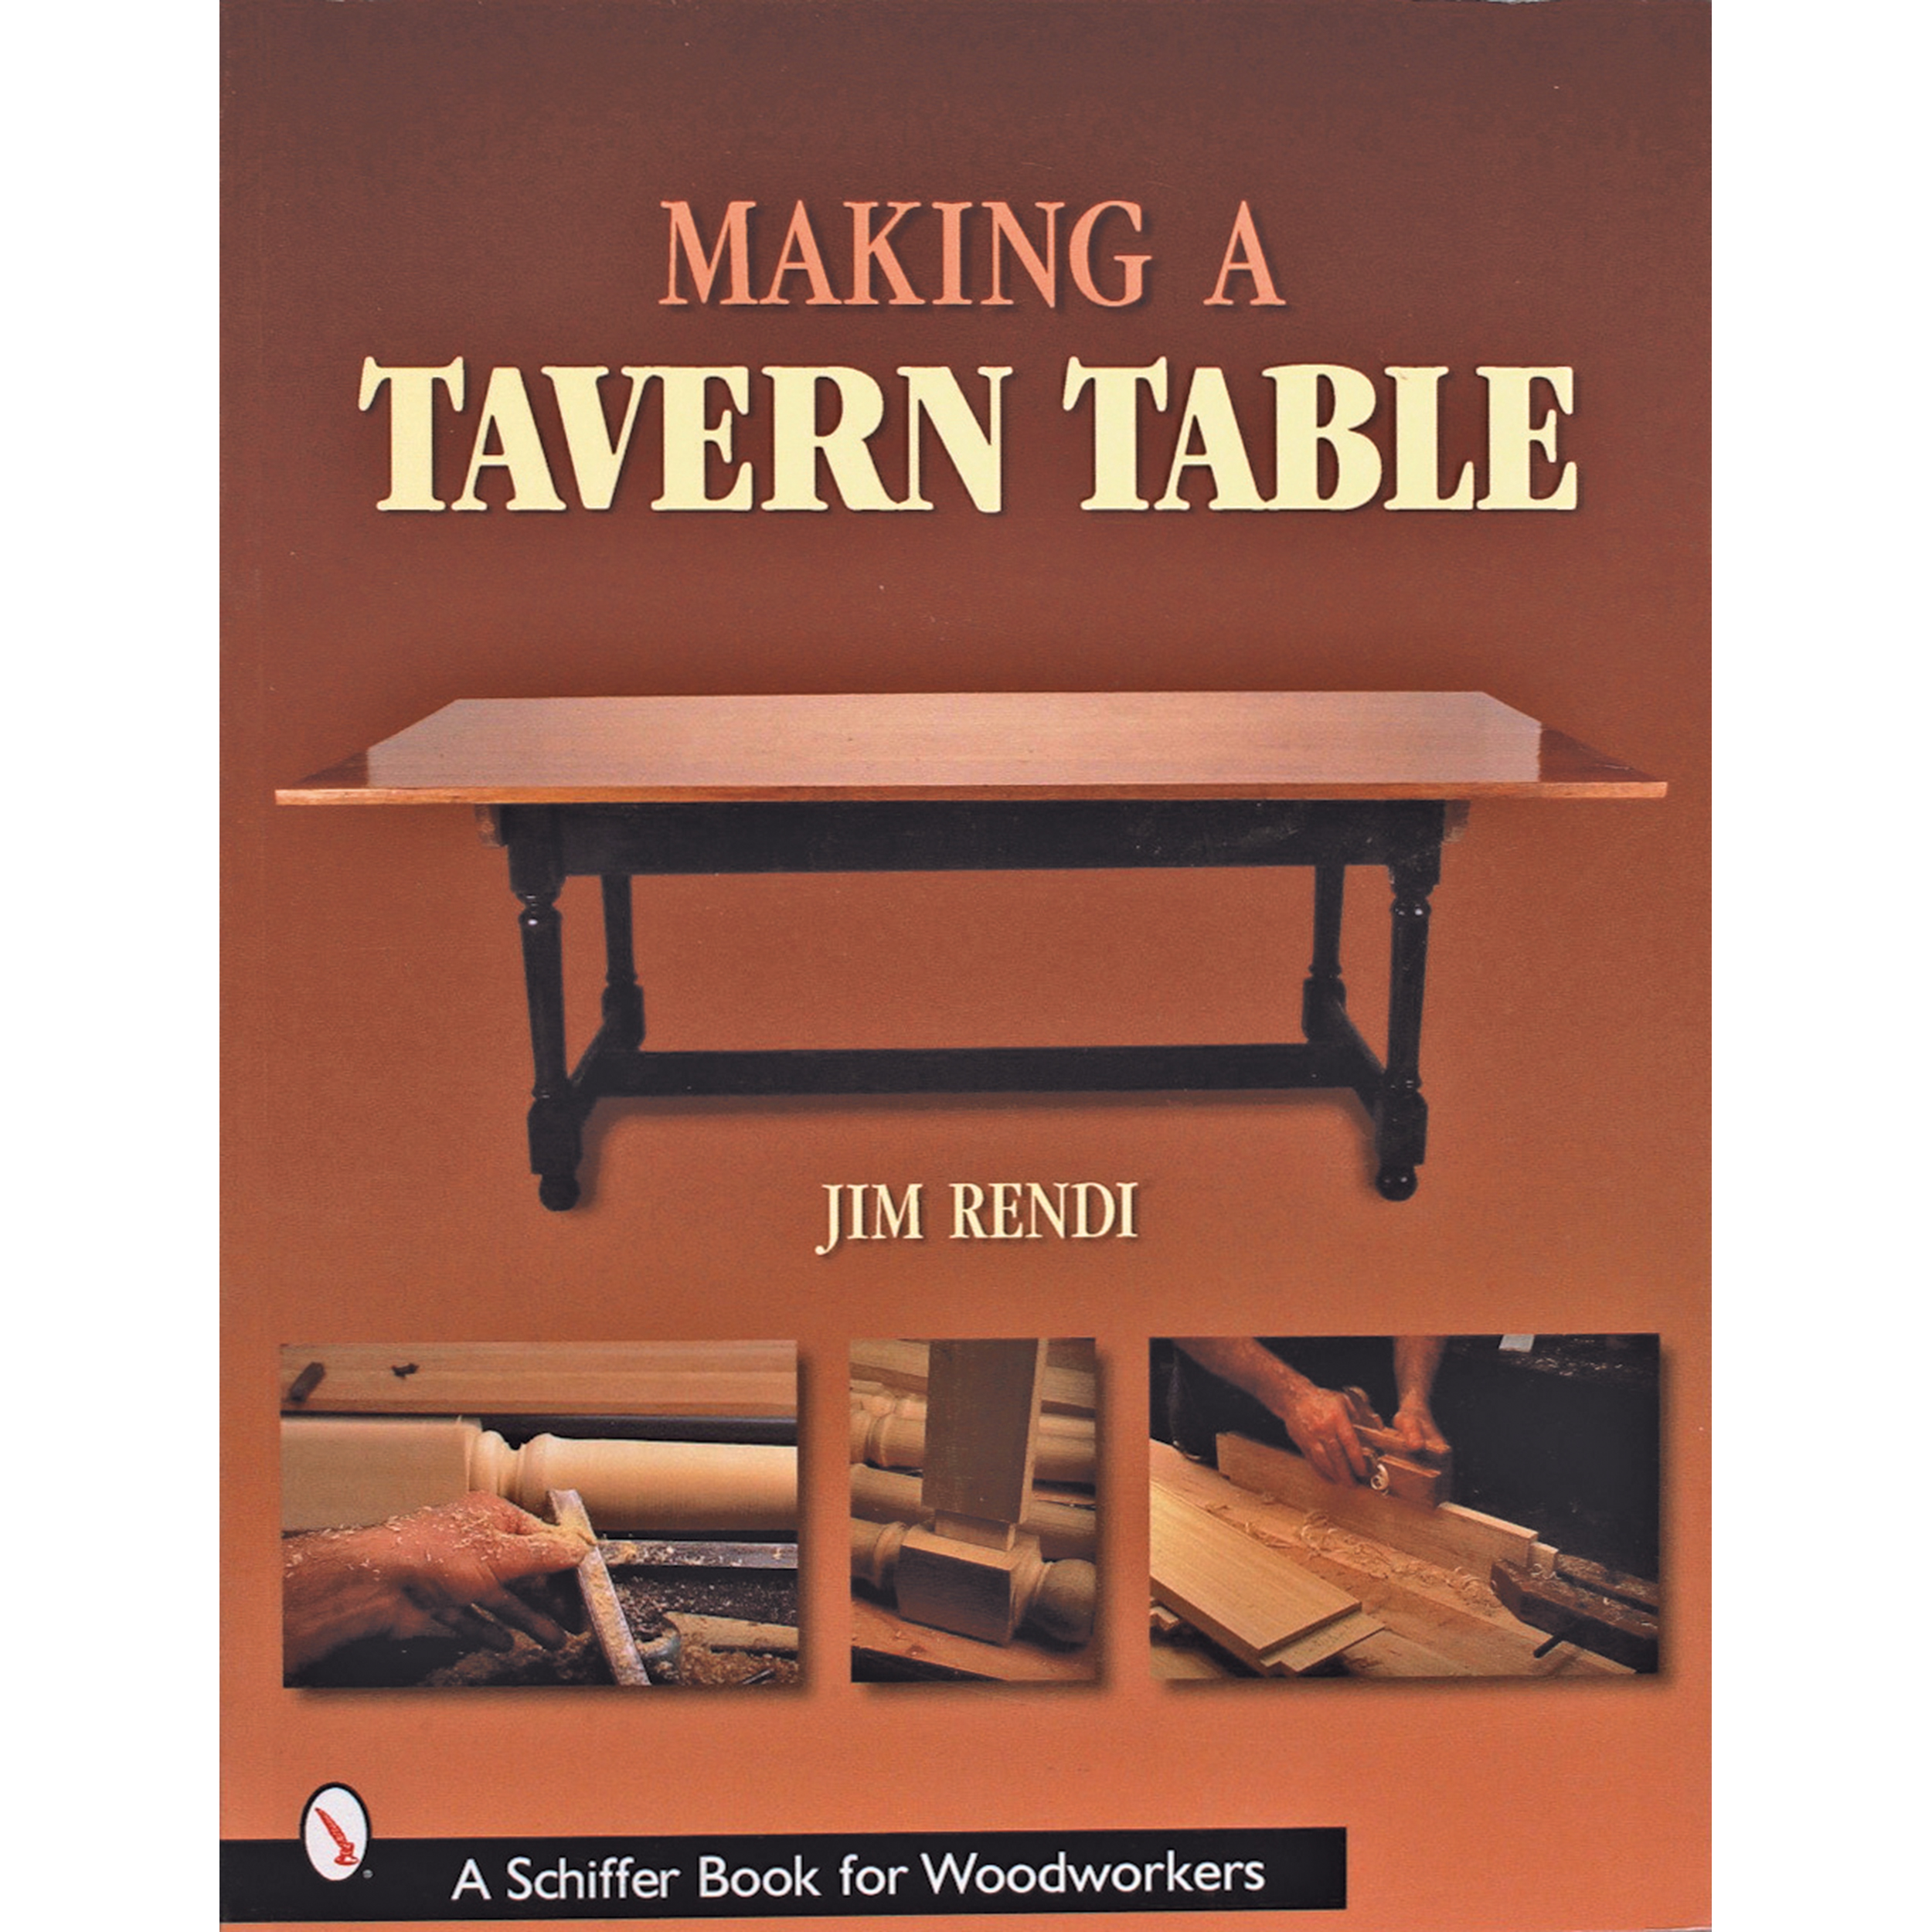 Making a Tavern Table